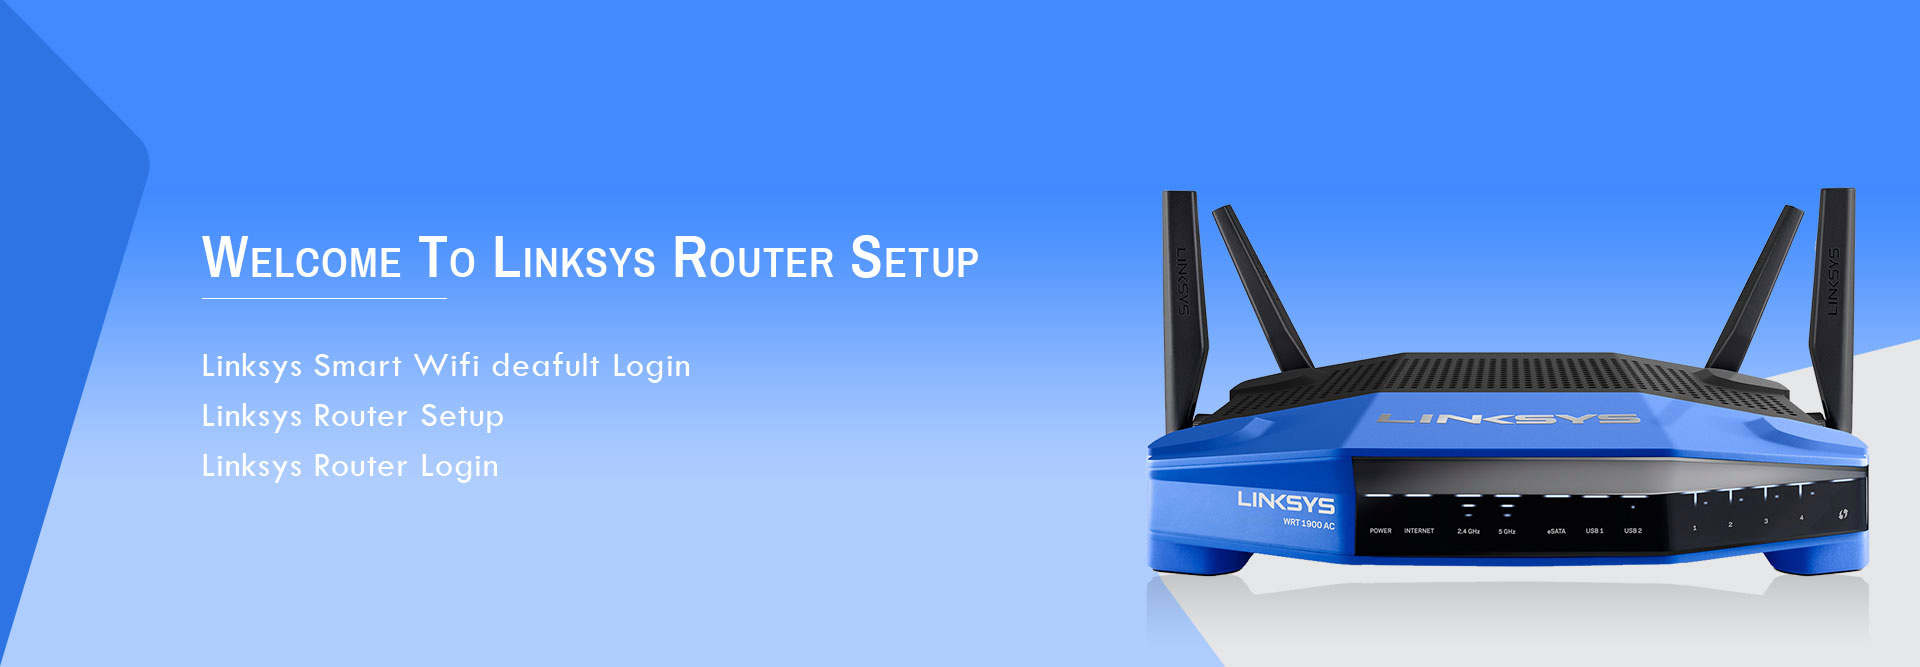 linksys router guide | linksys router login | linksyssmartwifi com